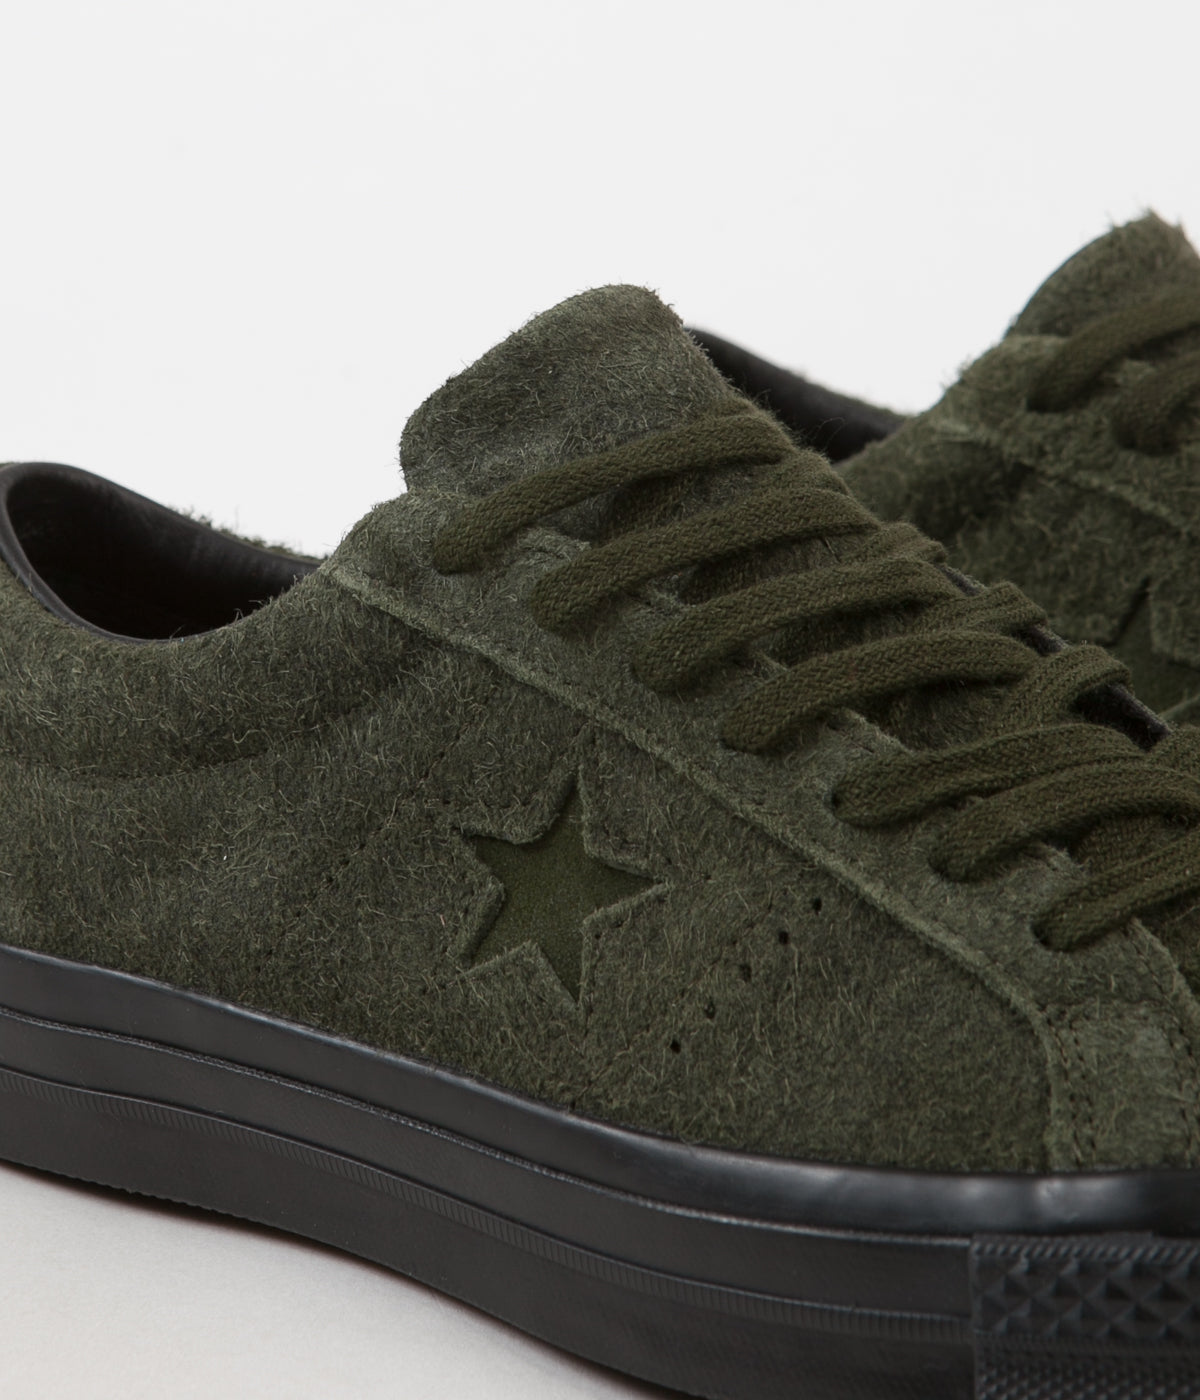 Converse One Star Ox Shoes - Utility